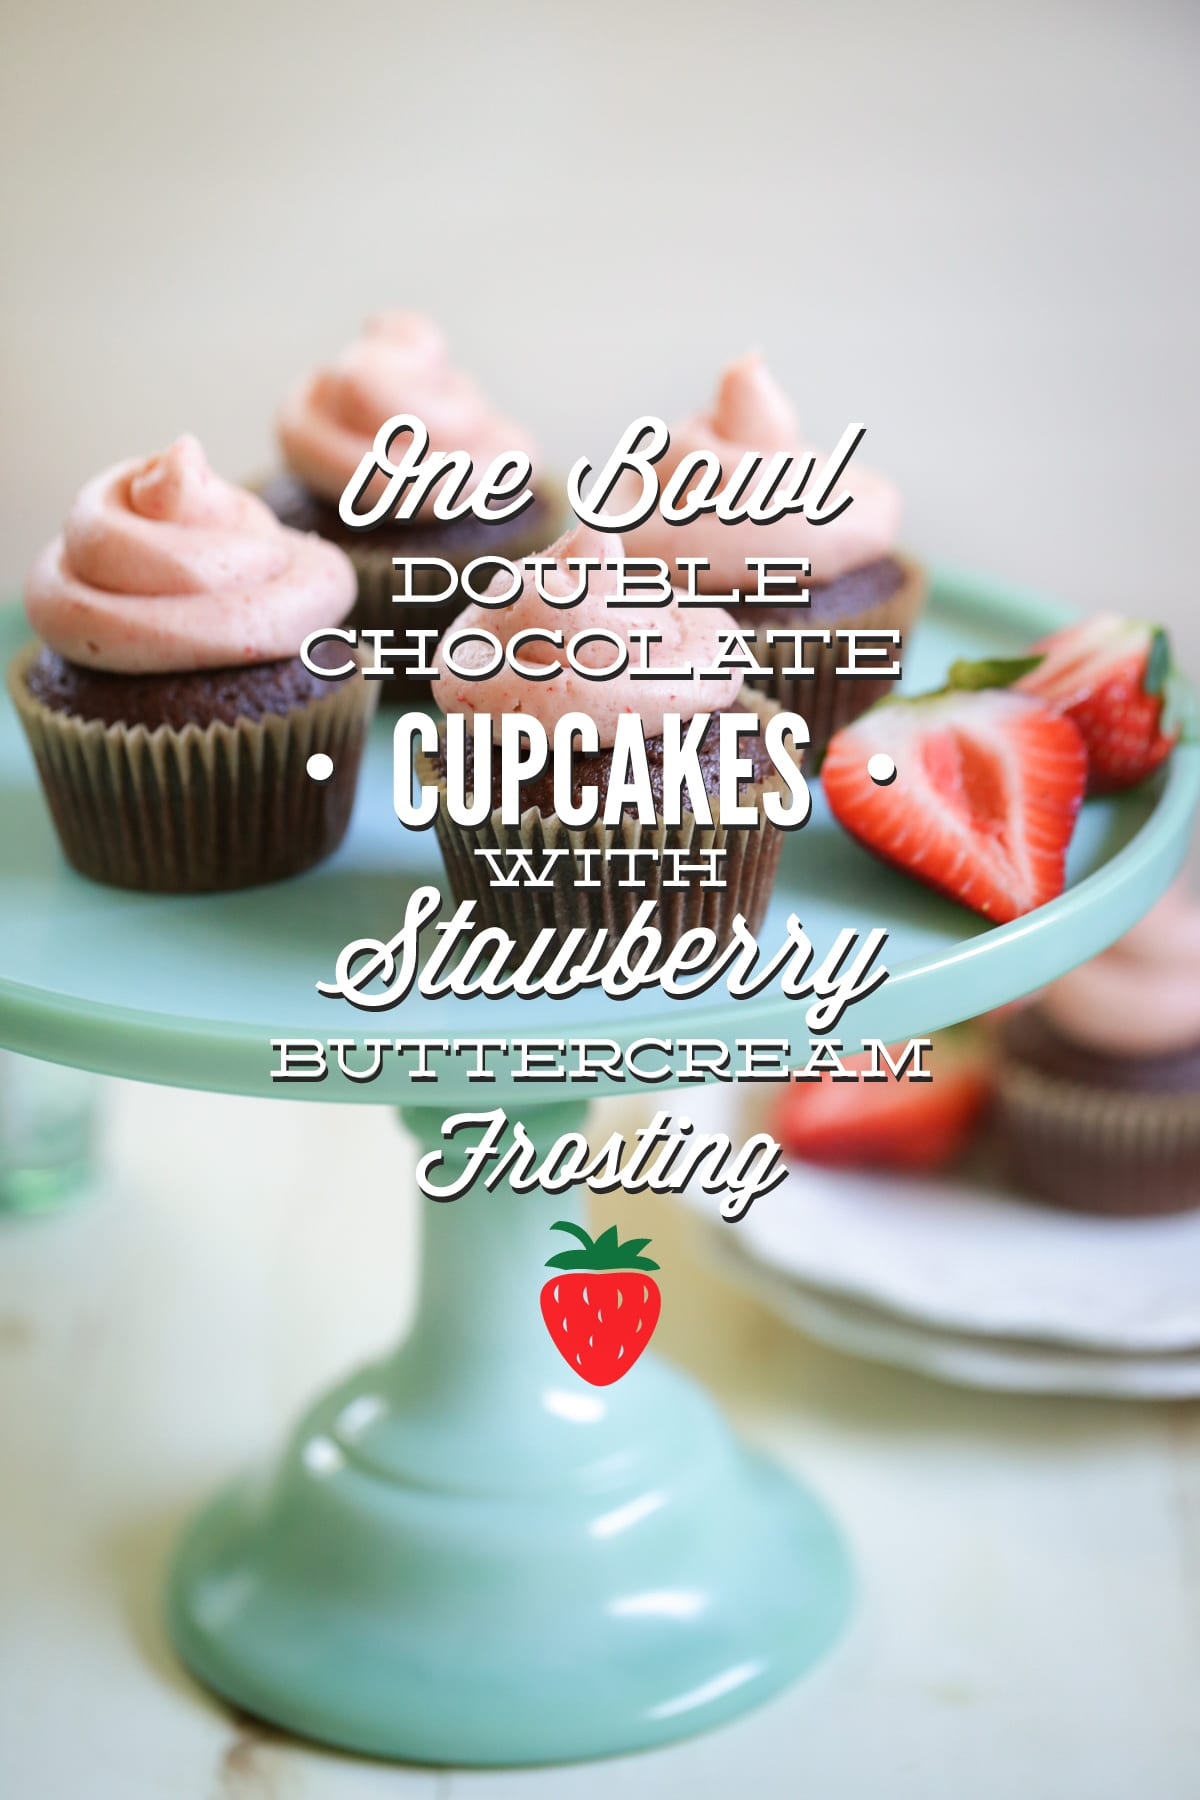 One Bowl Double Chocolate Cupcakes with Strawberry ...